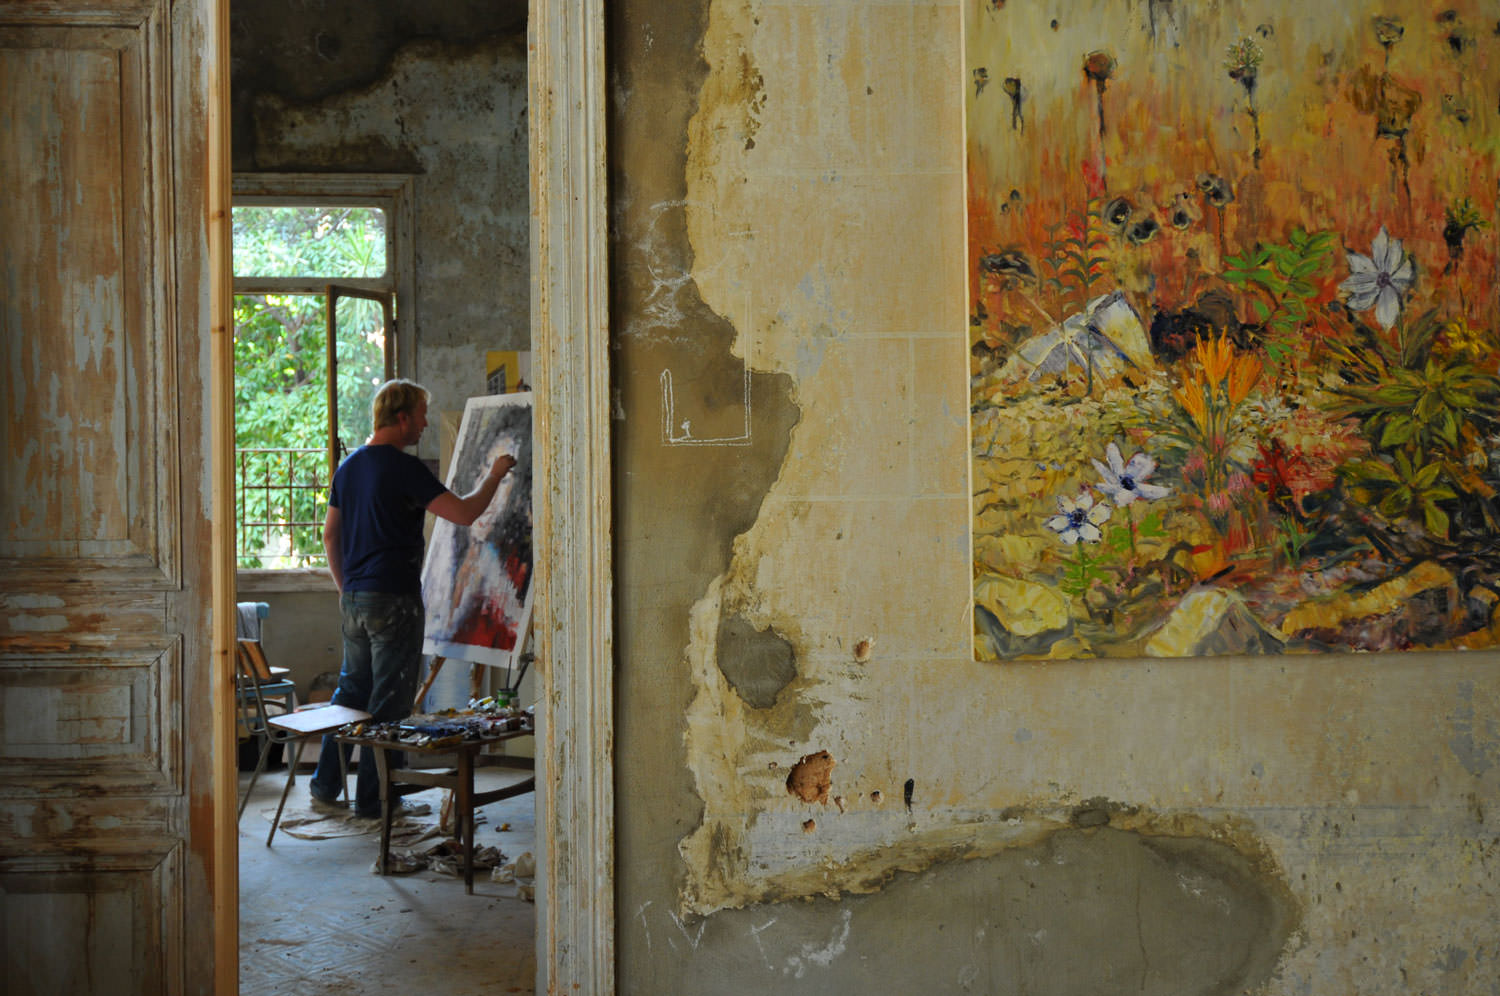 Tom Young in Villa Paradiso, Beirut, which he helped transform into a gallery. Image: Elsie Haddad